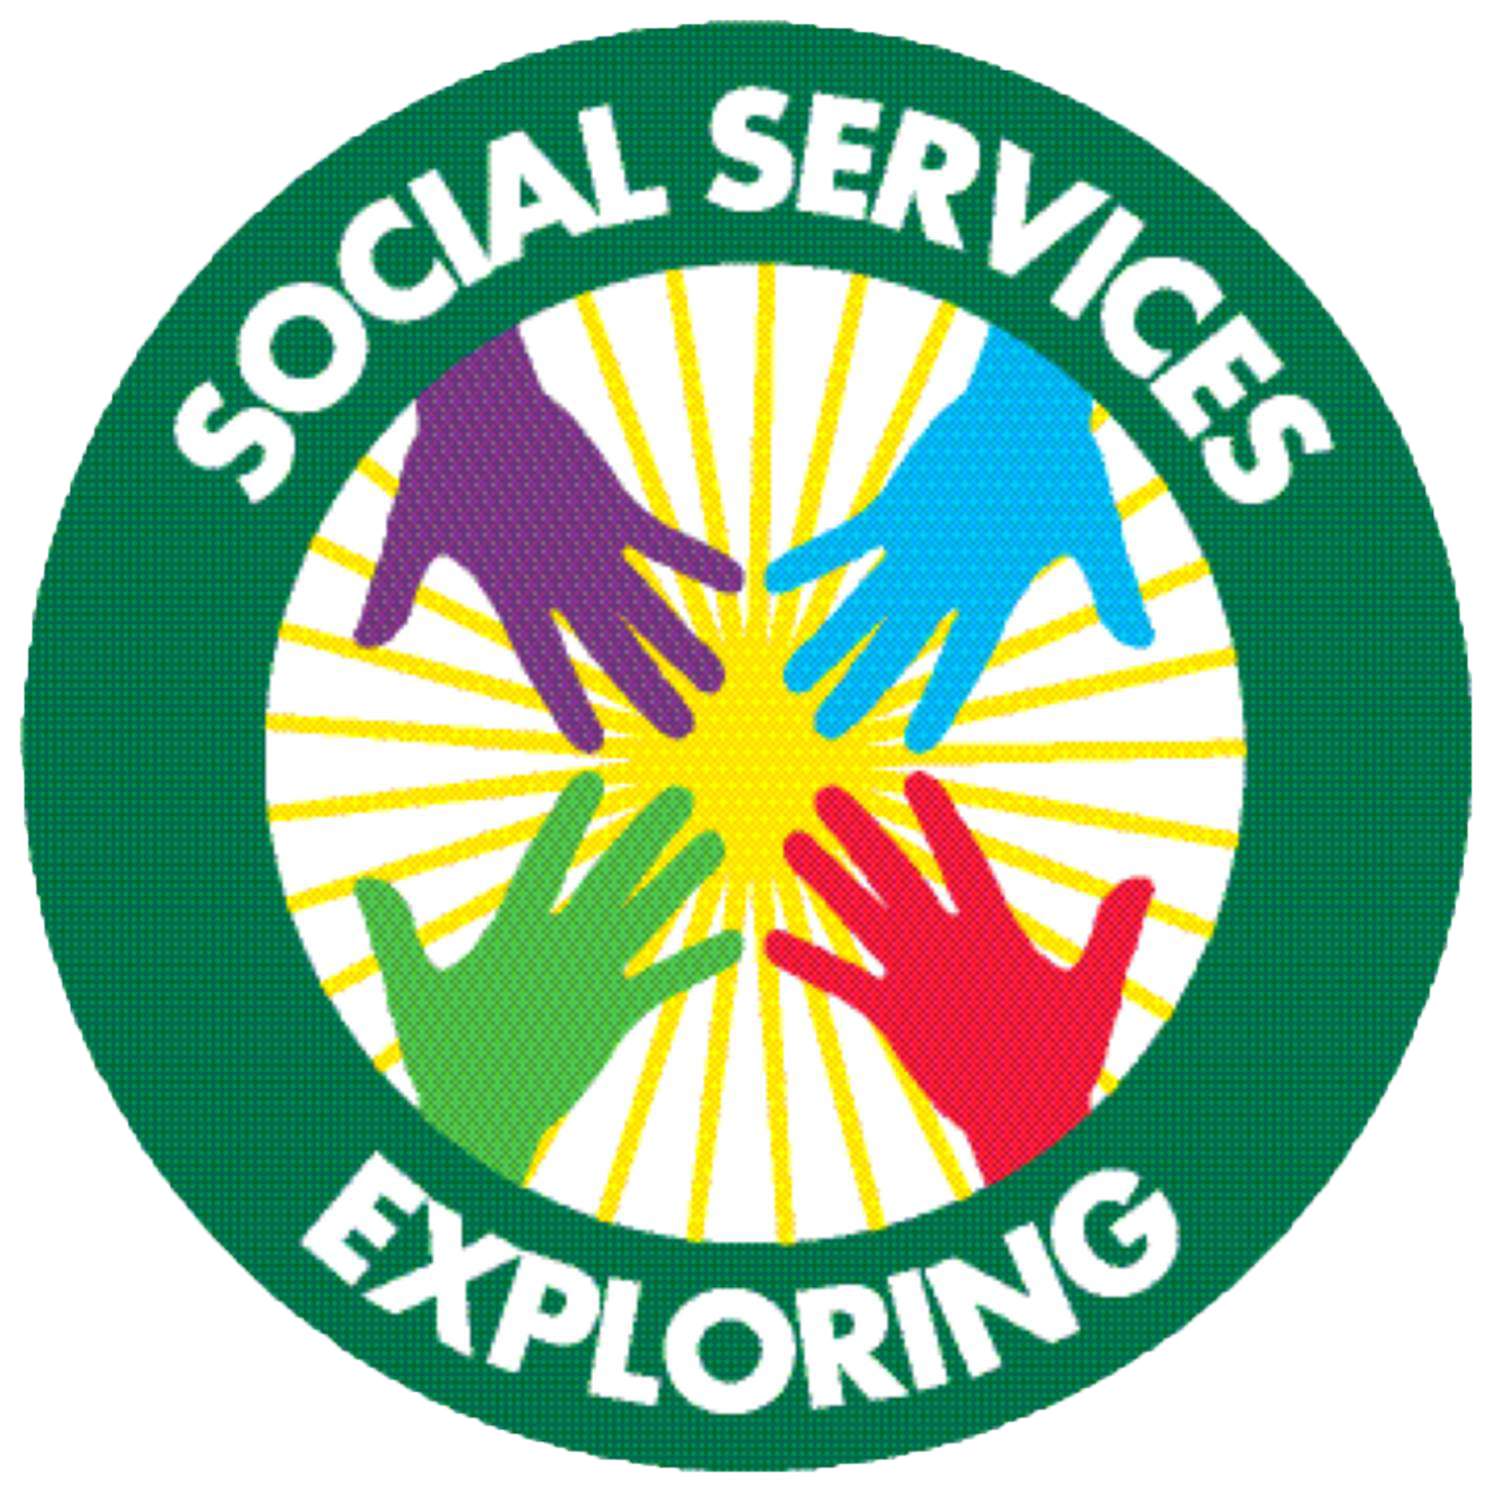 exploring human services Exploring majors and careers at bgsu 102 health and human services building bowling green, oh 43403-0154 phone: 419-372-8242 fax: fax: 419-372-2897 current job openings contact information college of health and human services.